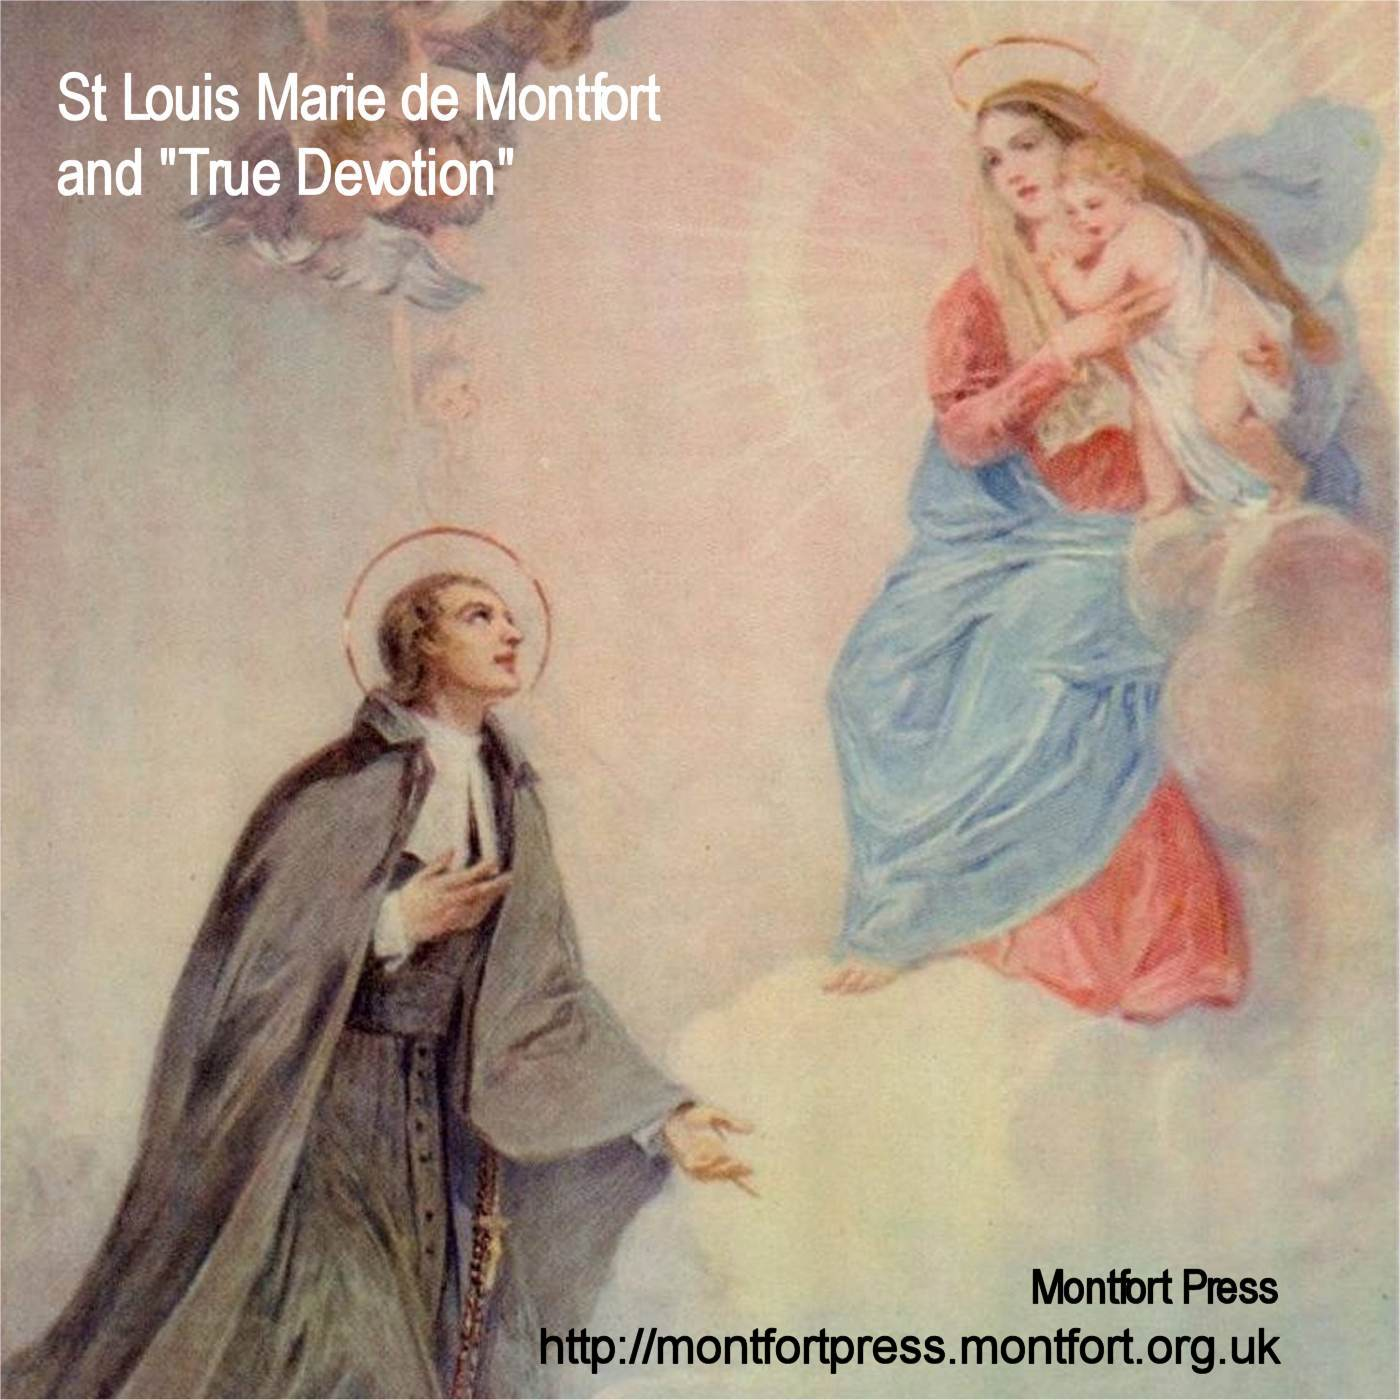 St Louis Marie de Montfort and